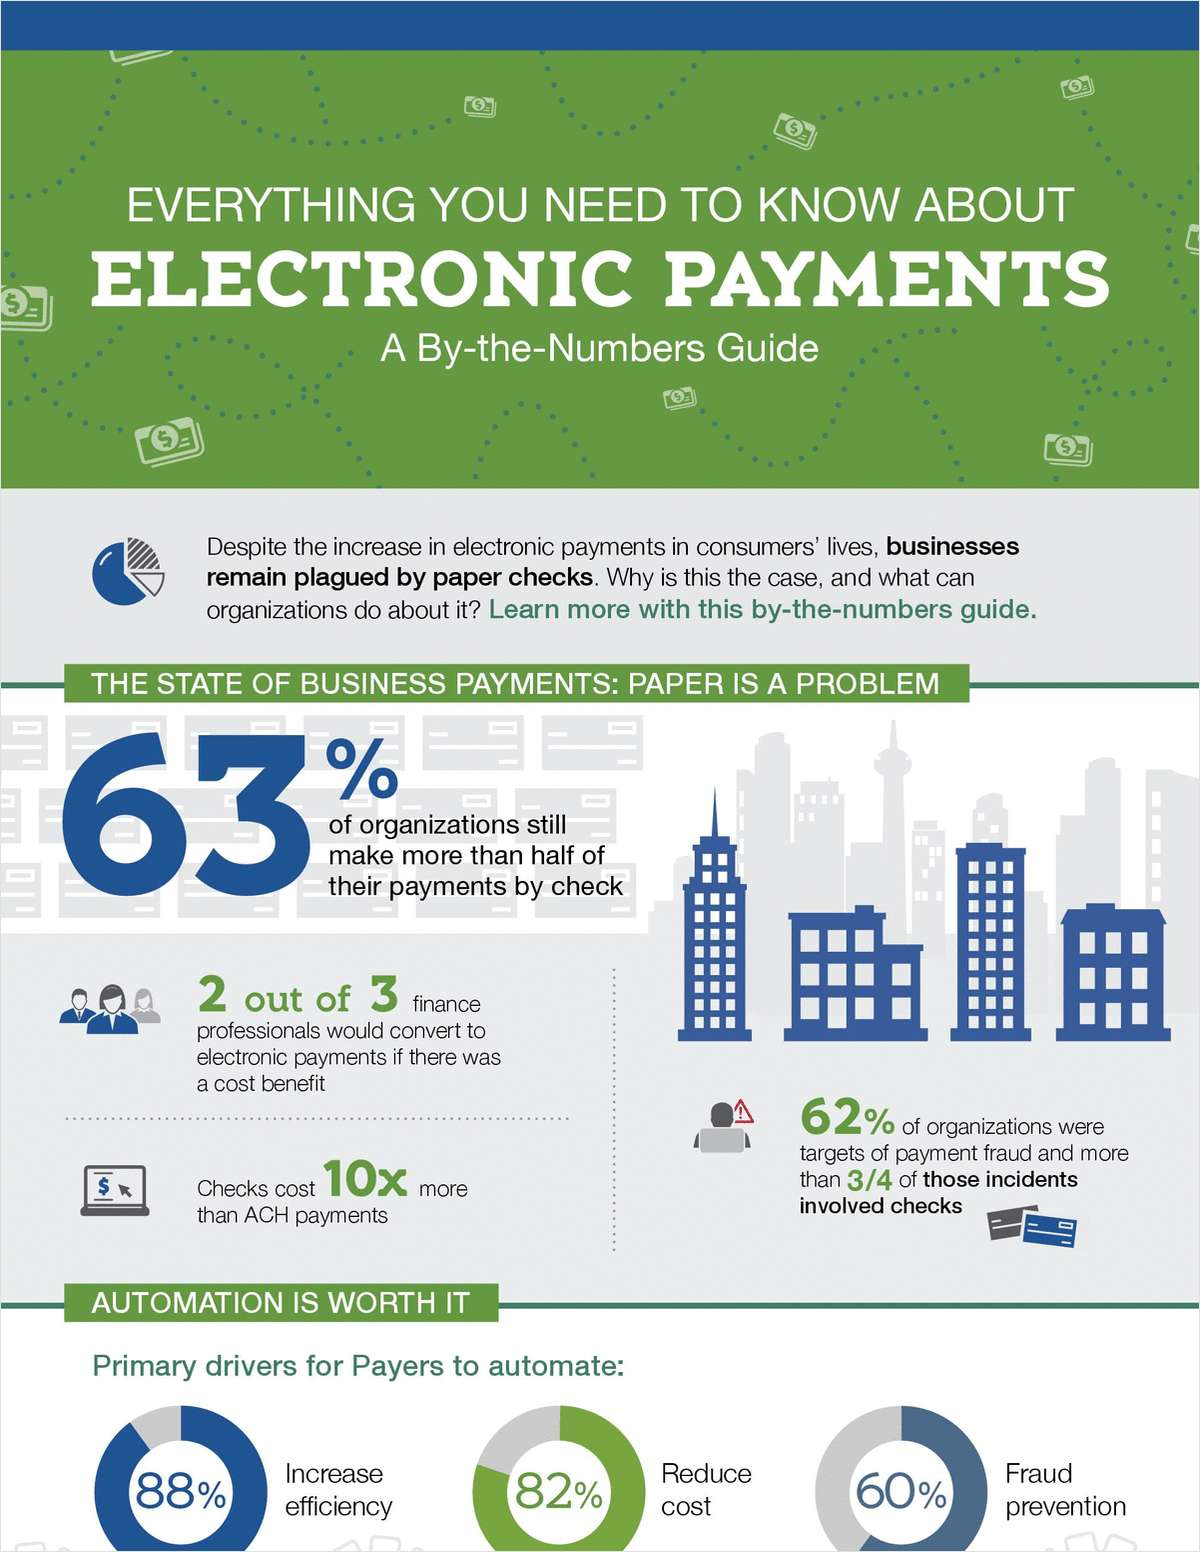 Everything You Need to Know About Electronic Payments